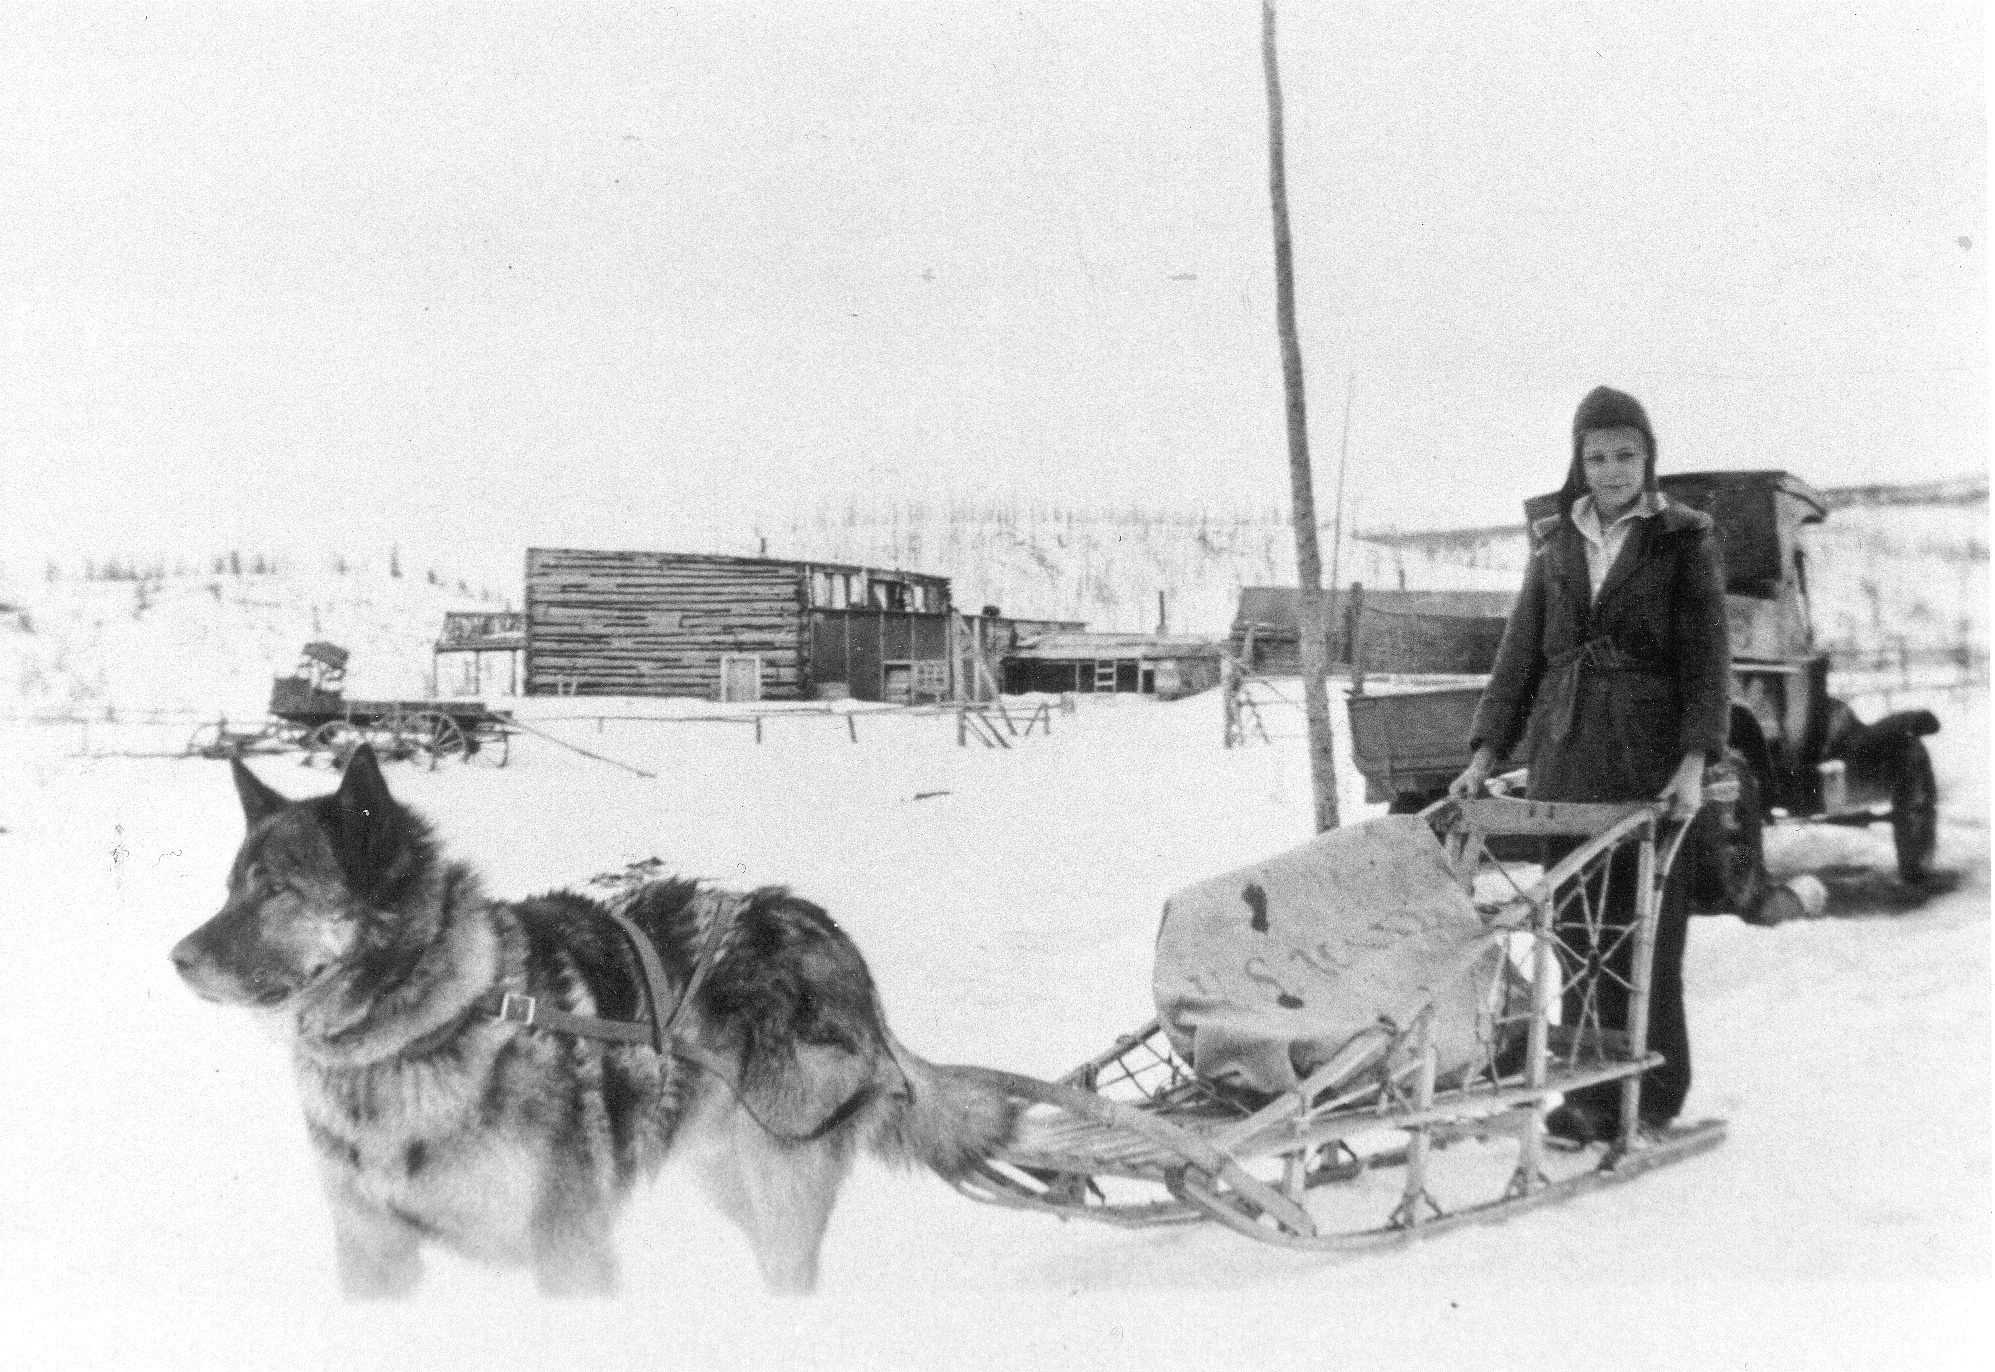 a woman on a sled pulled by a dog